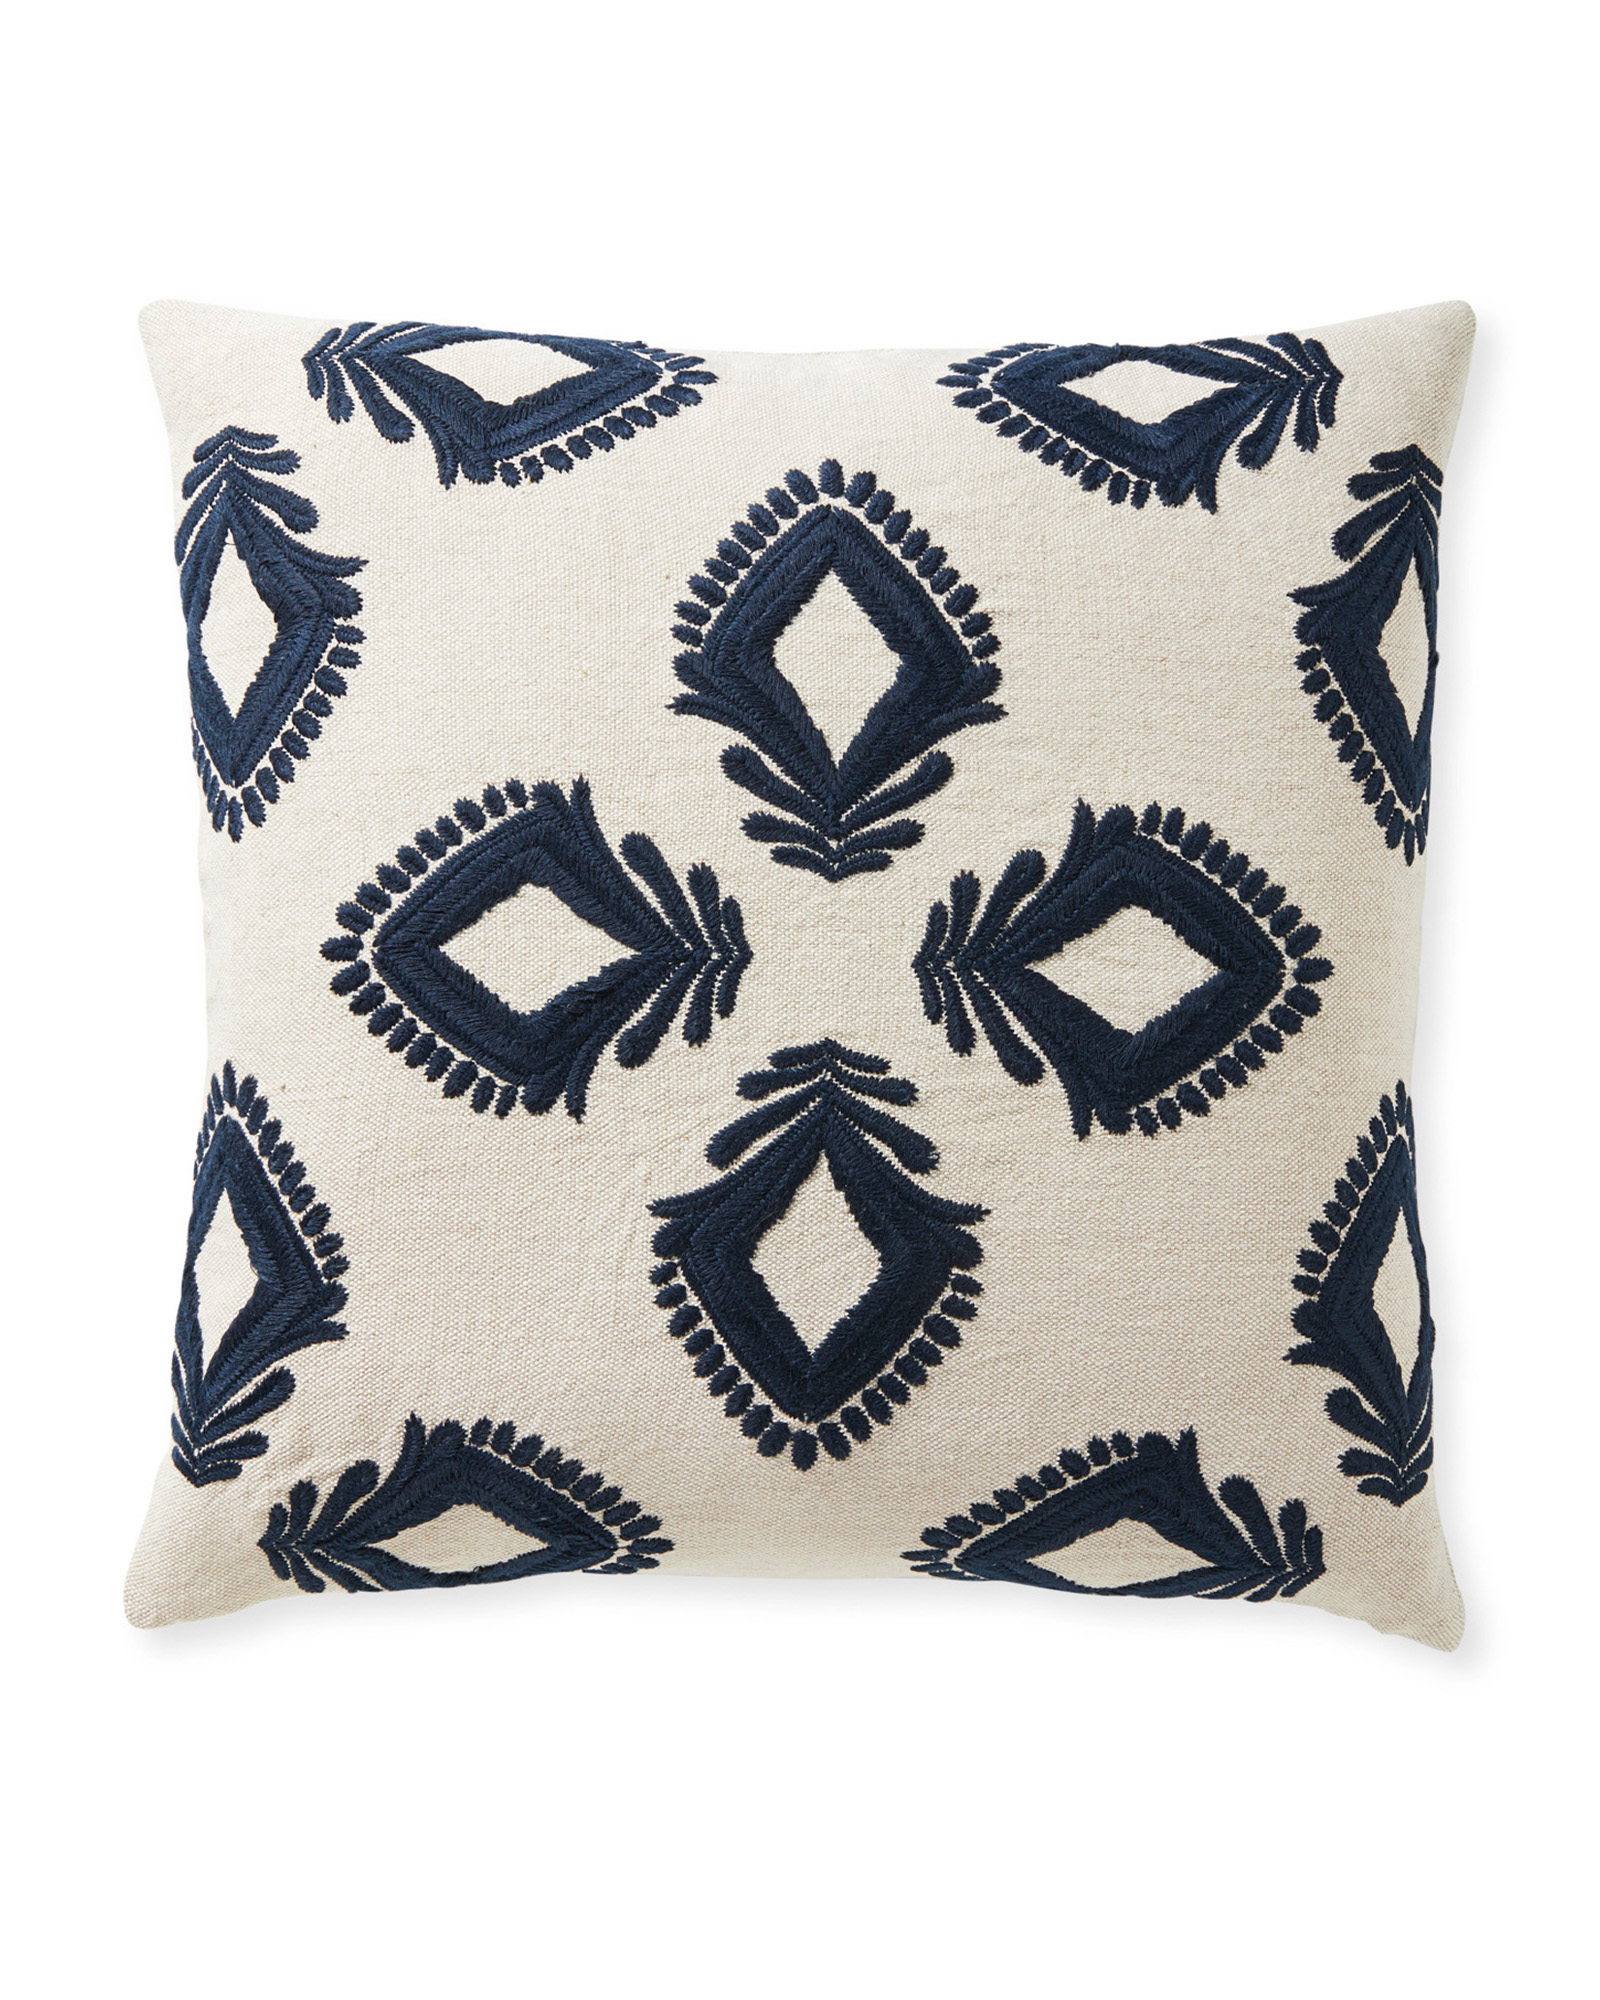 Leighton Pillow Cover, Sand/Navy